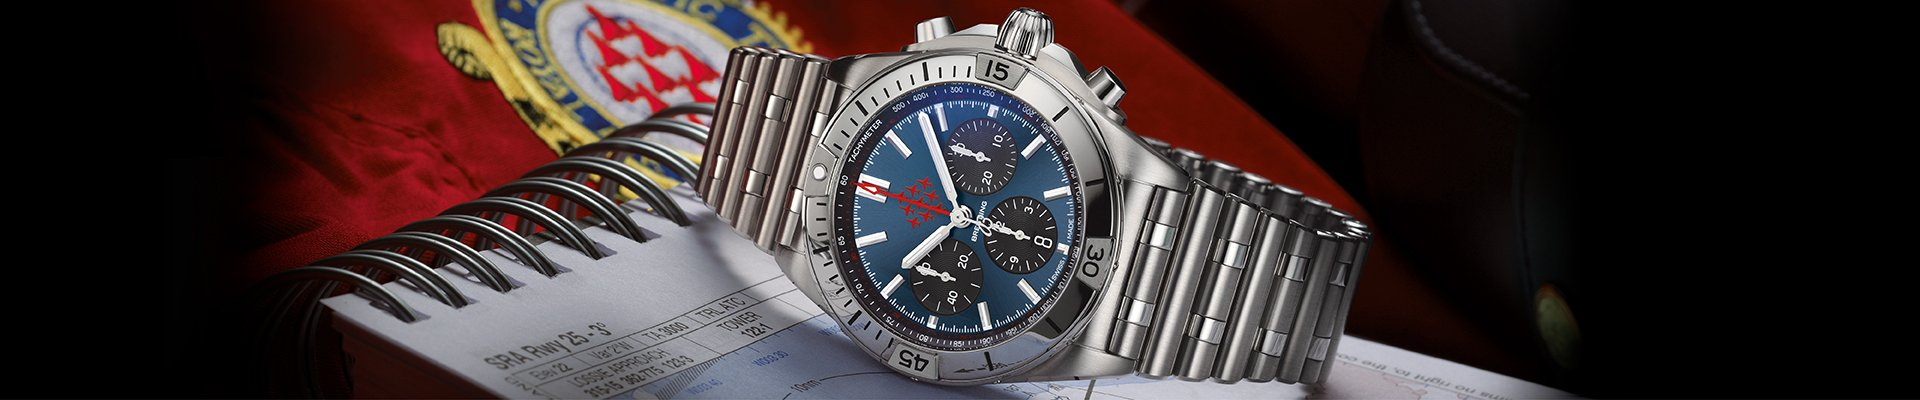 ebb79bb52c3 Breitling Watches | AMJ Watches